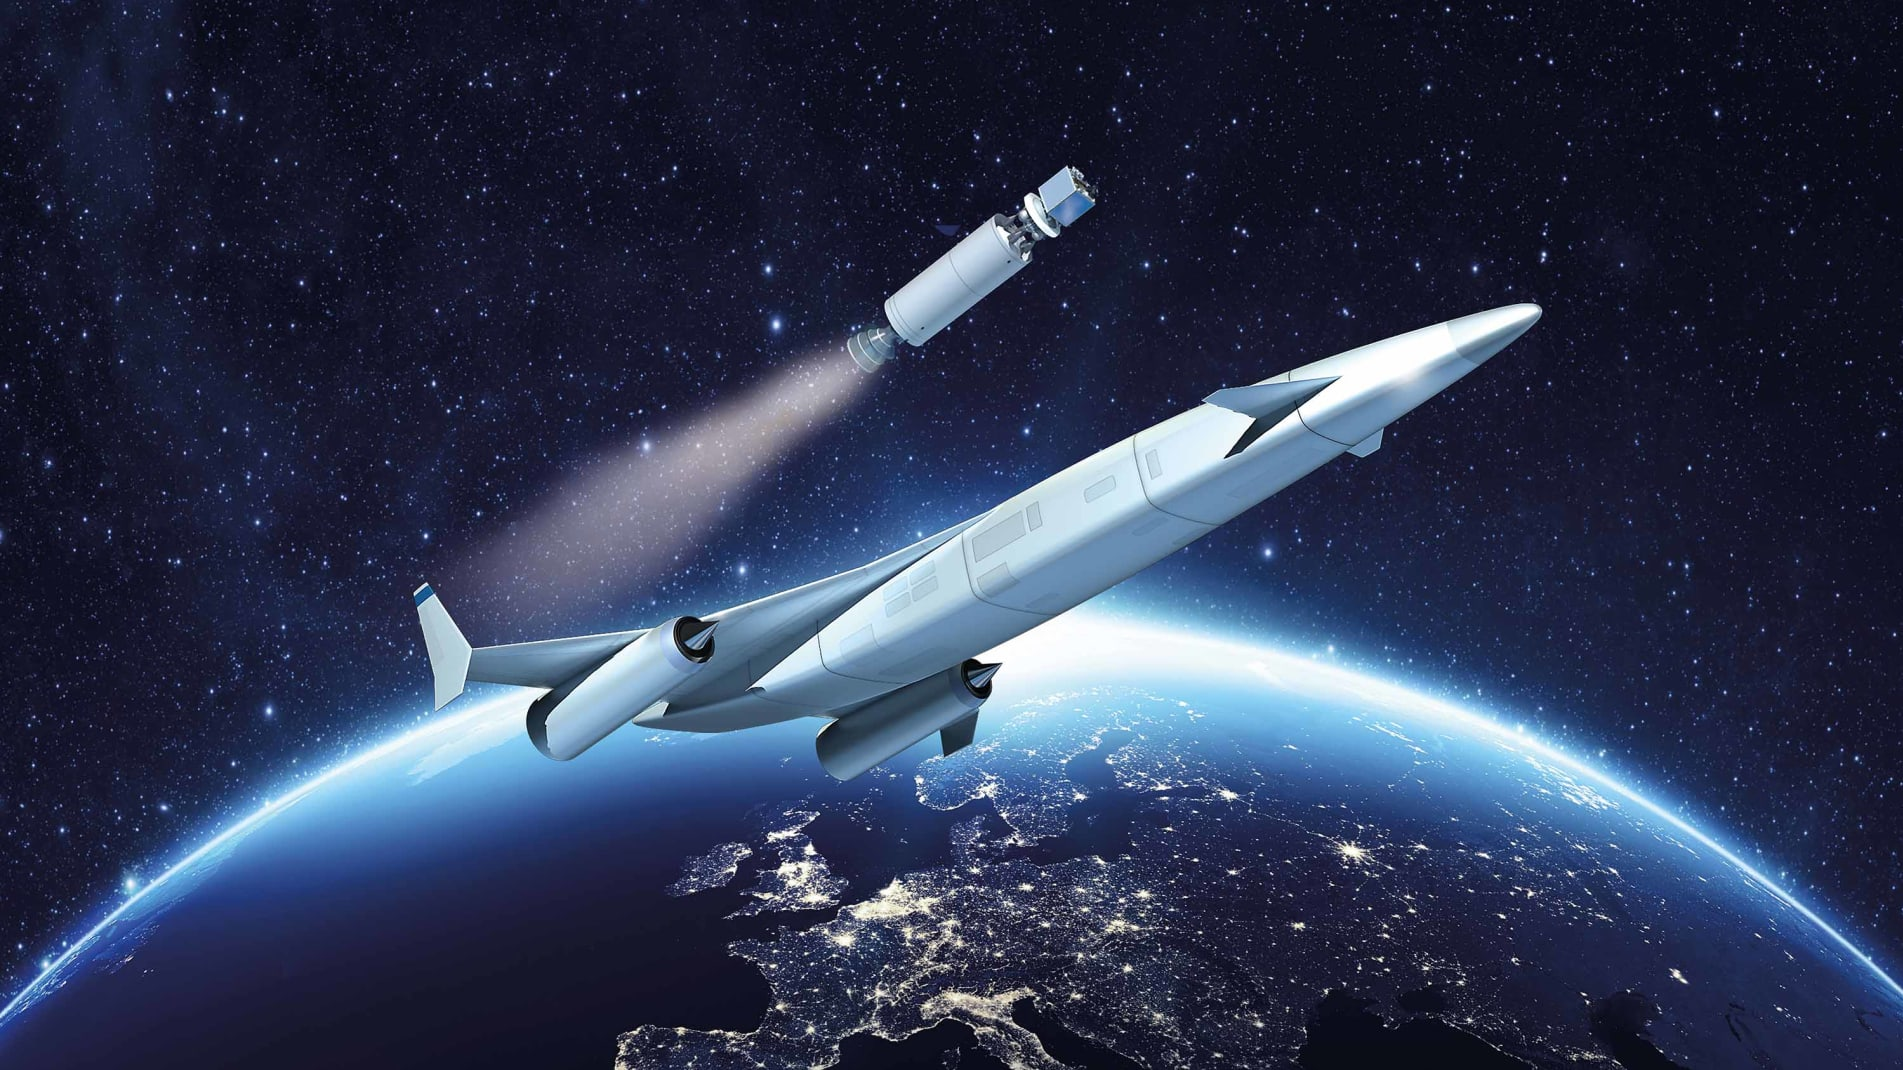 The engine could be used to propel aircraft into space.